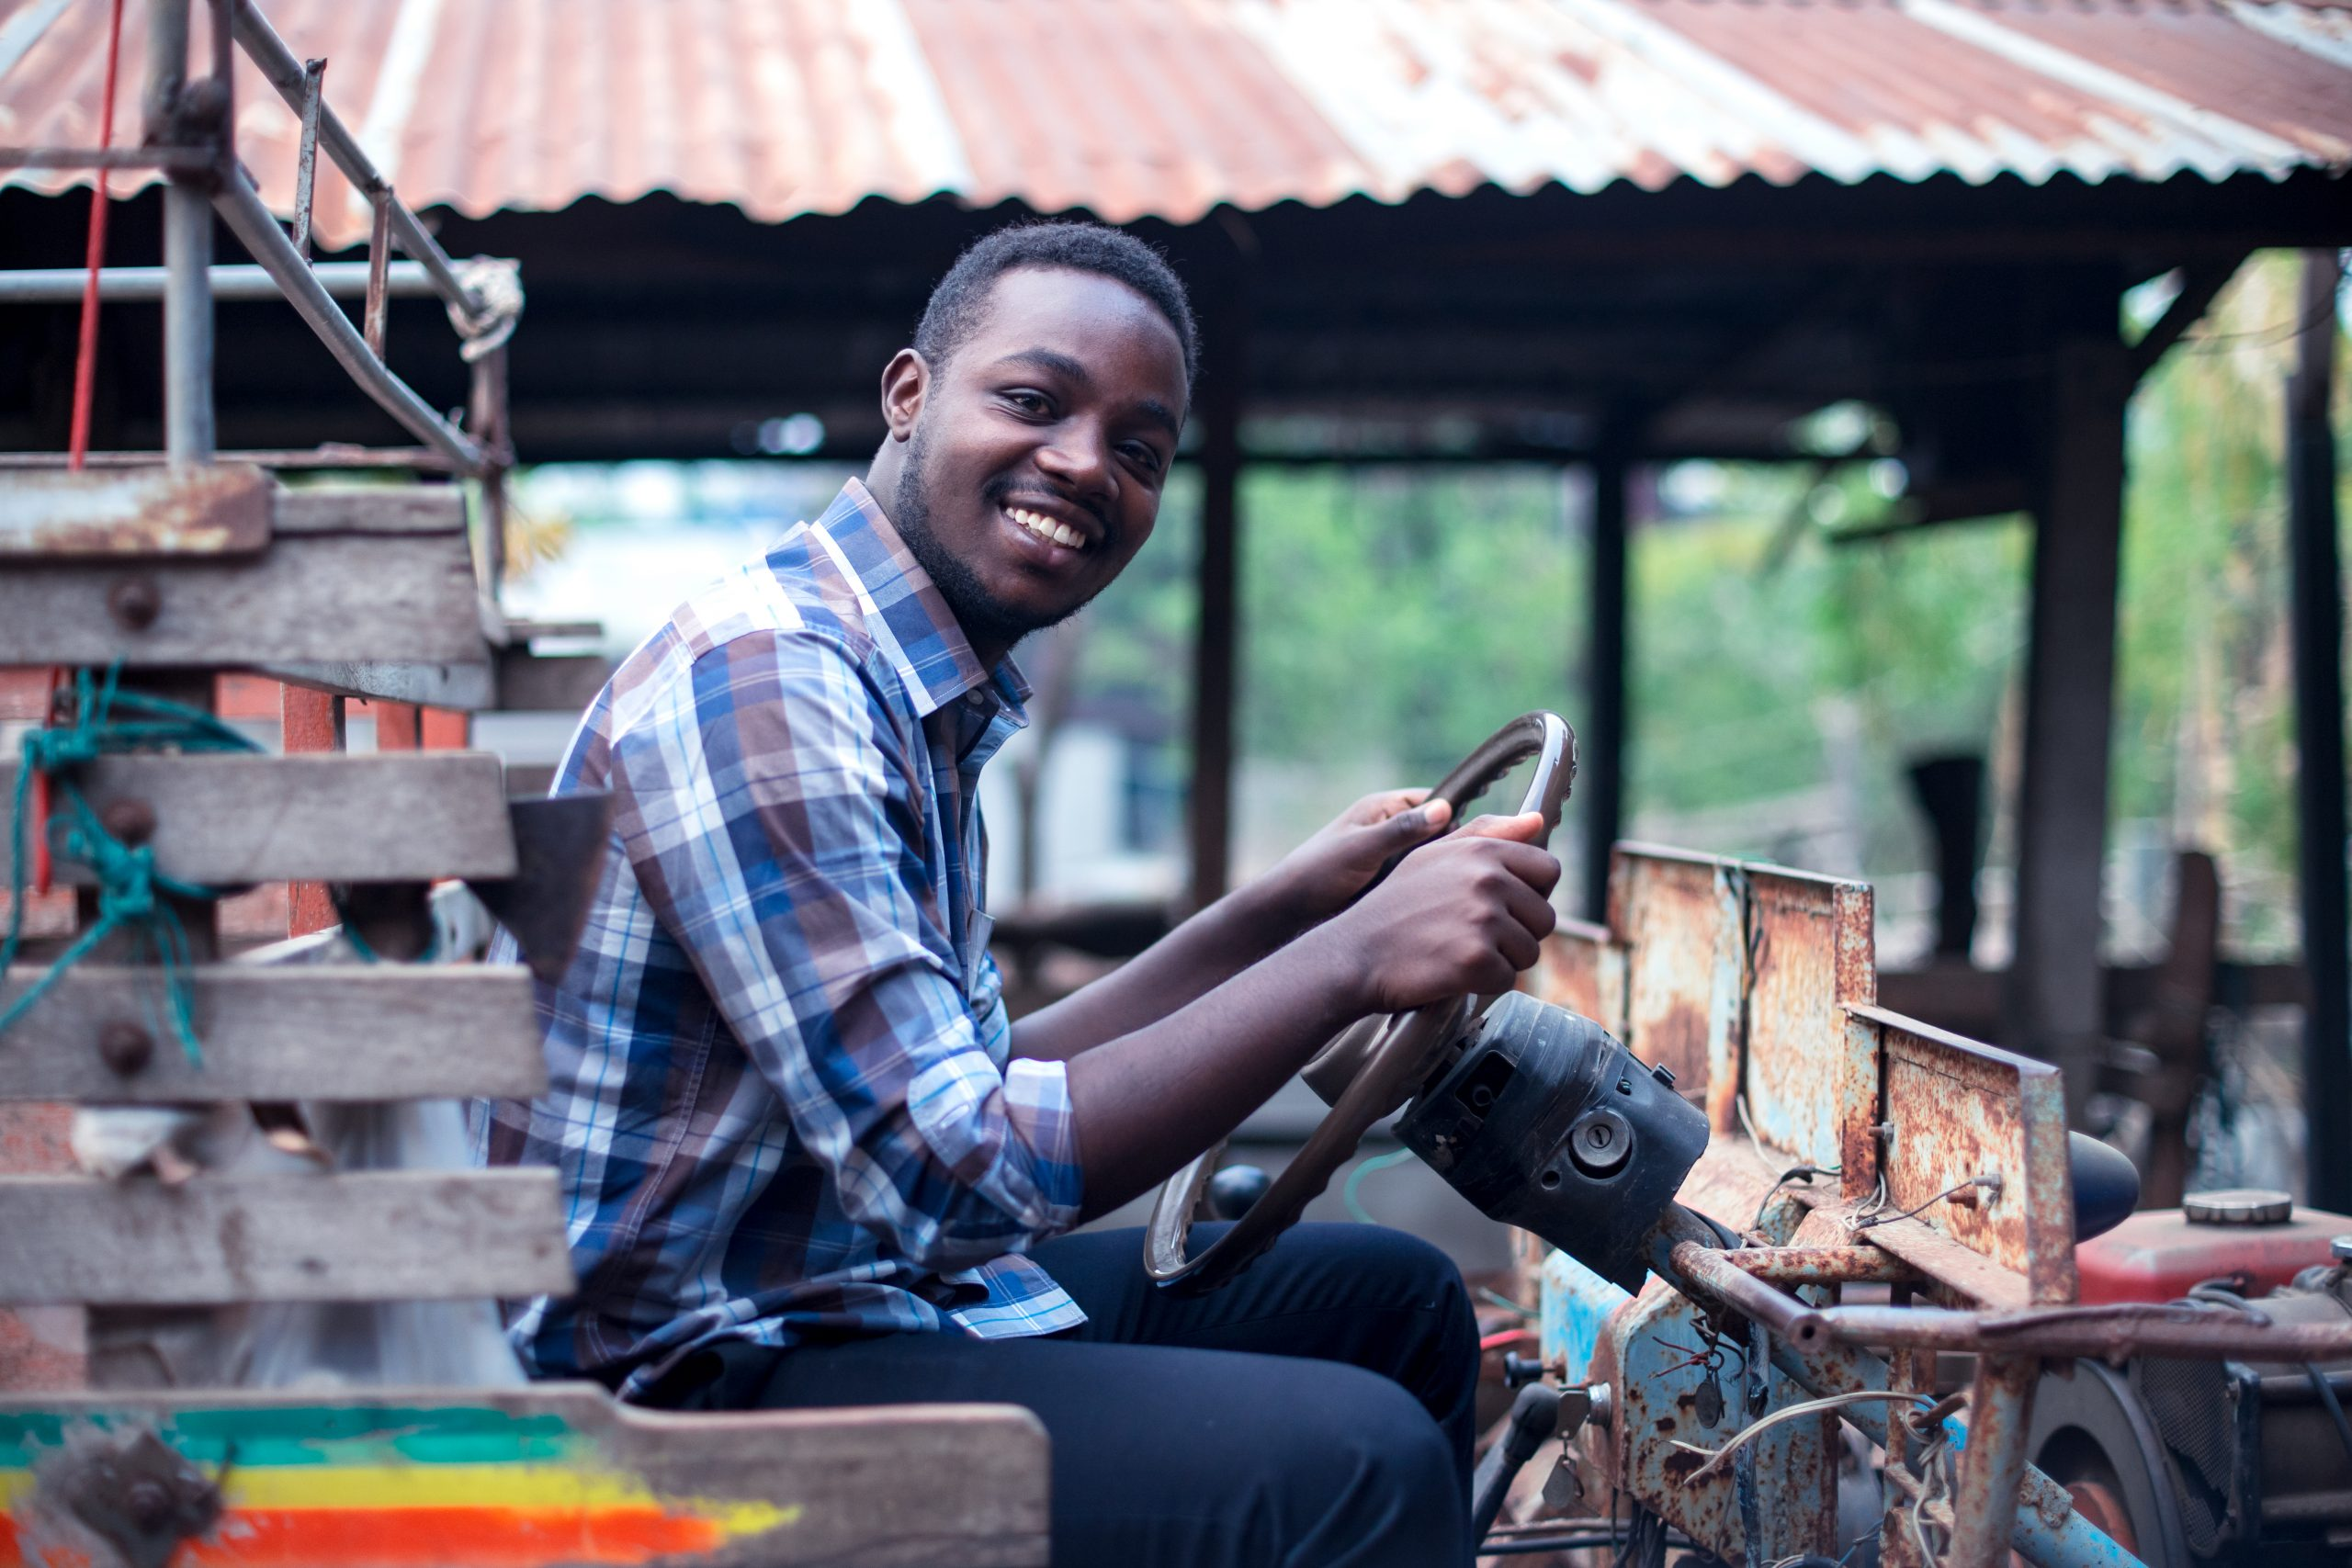 Five propositions for generating sustainable youth employment in Sub-Saharan Africa